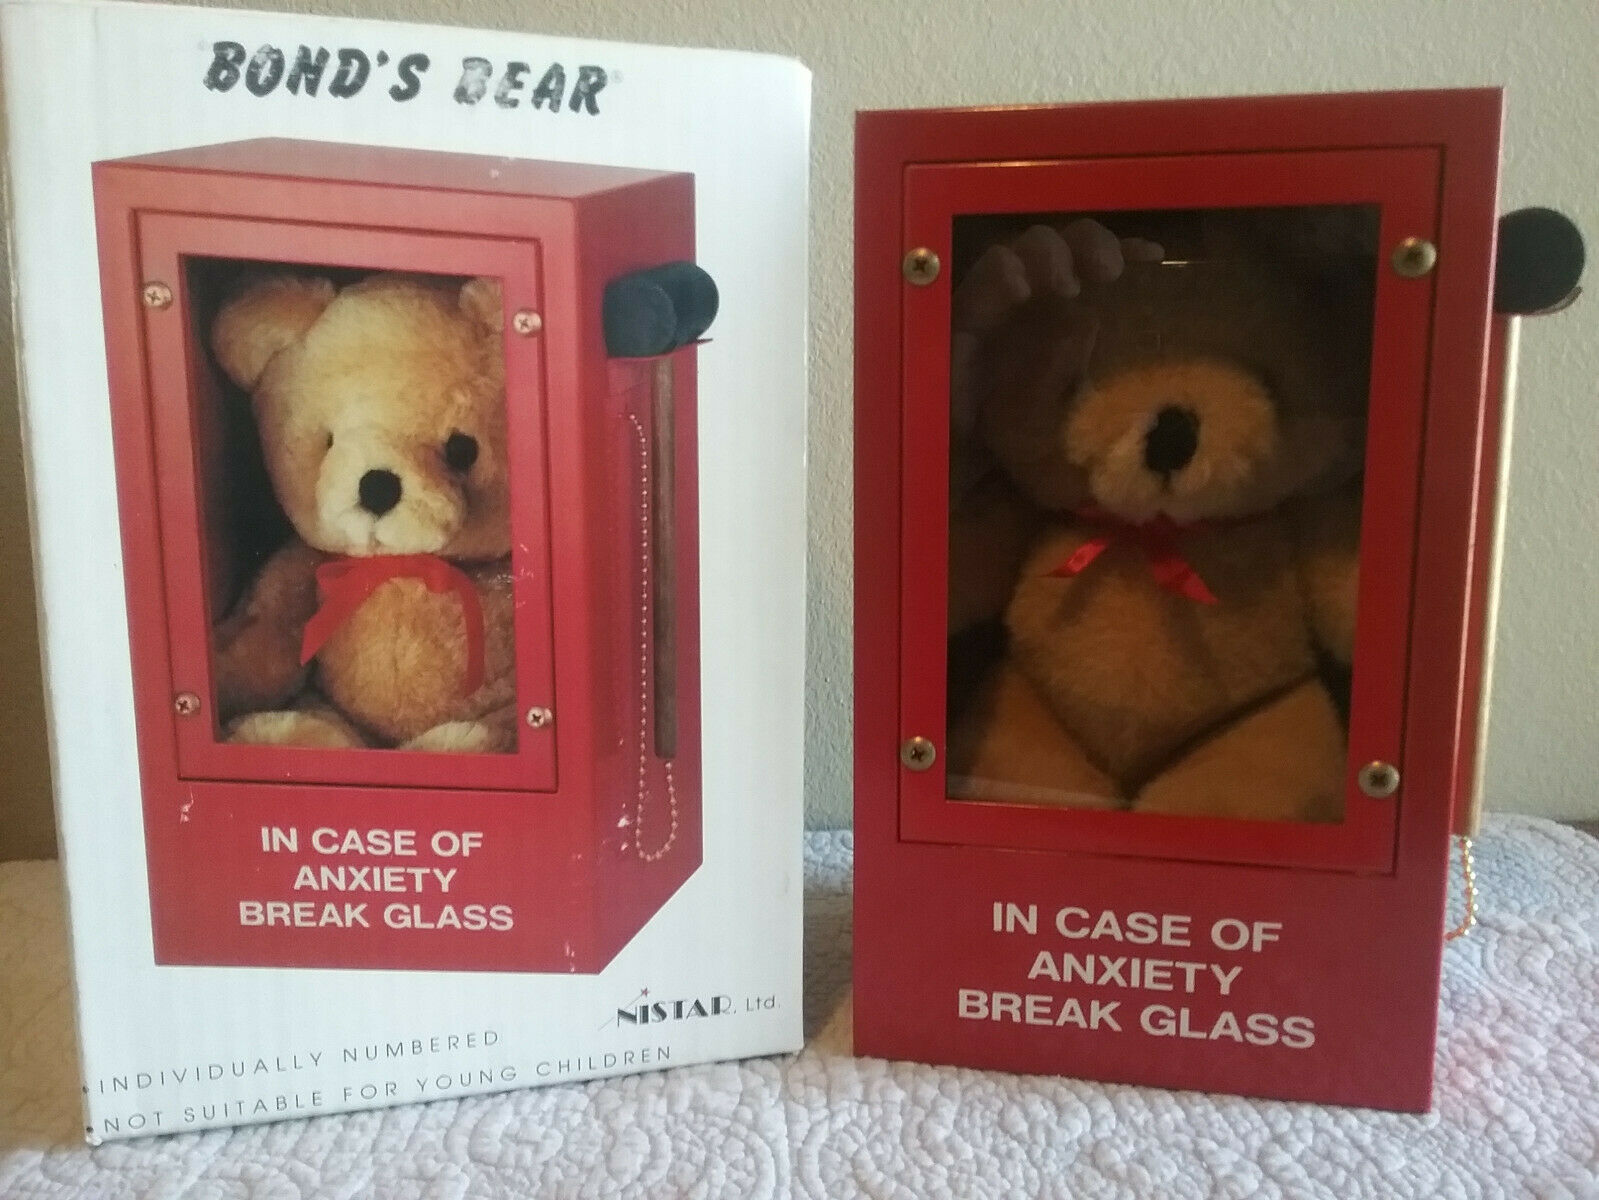 ANXIETY BEAR in Emergency  Alarm Box  Based on the 1990 drawing by Simon Bond,